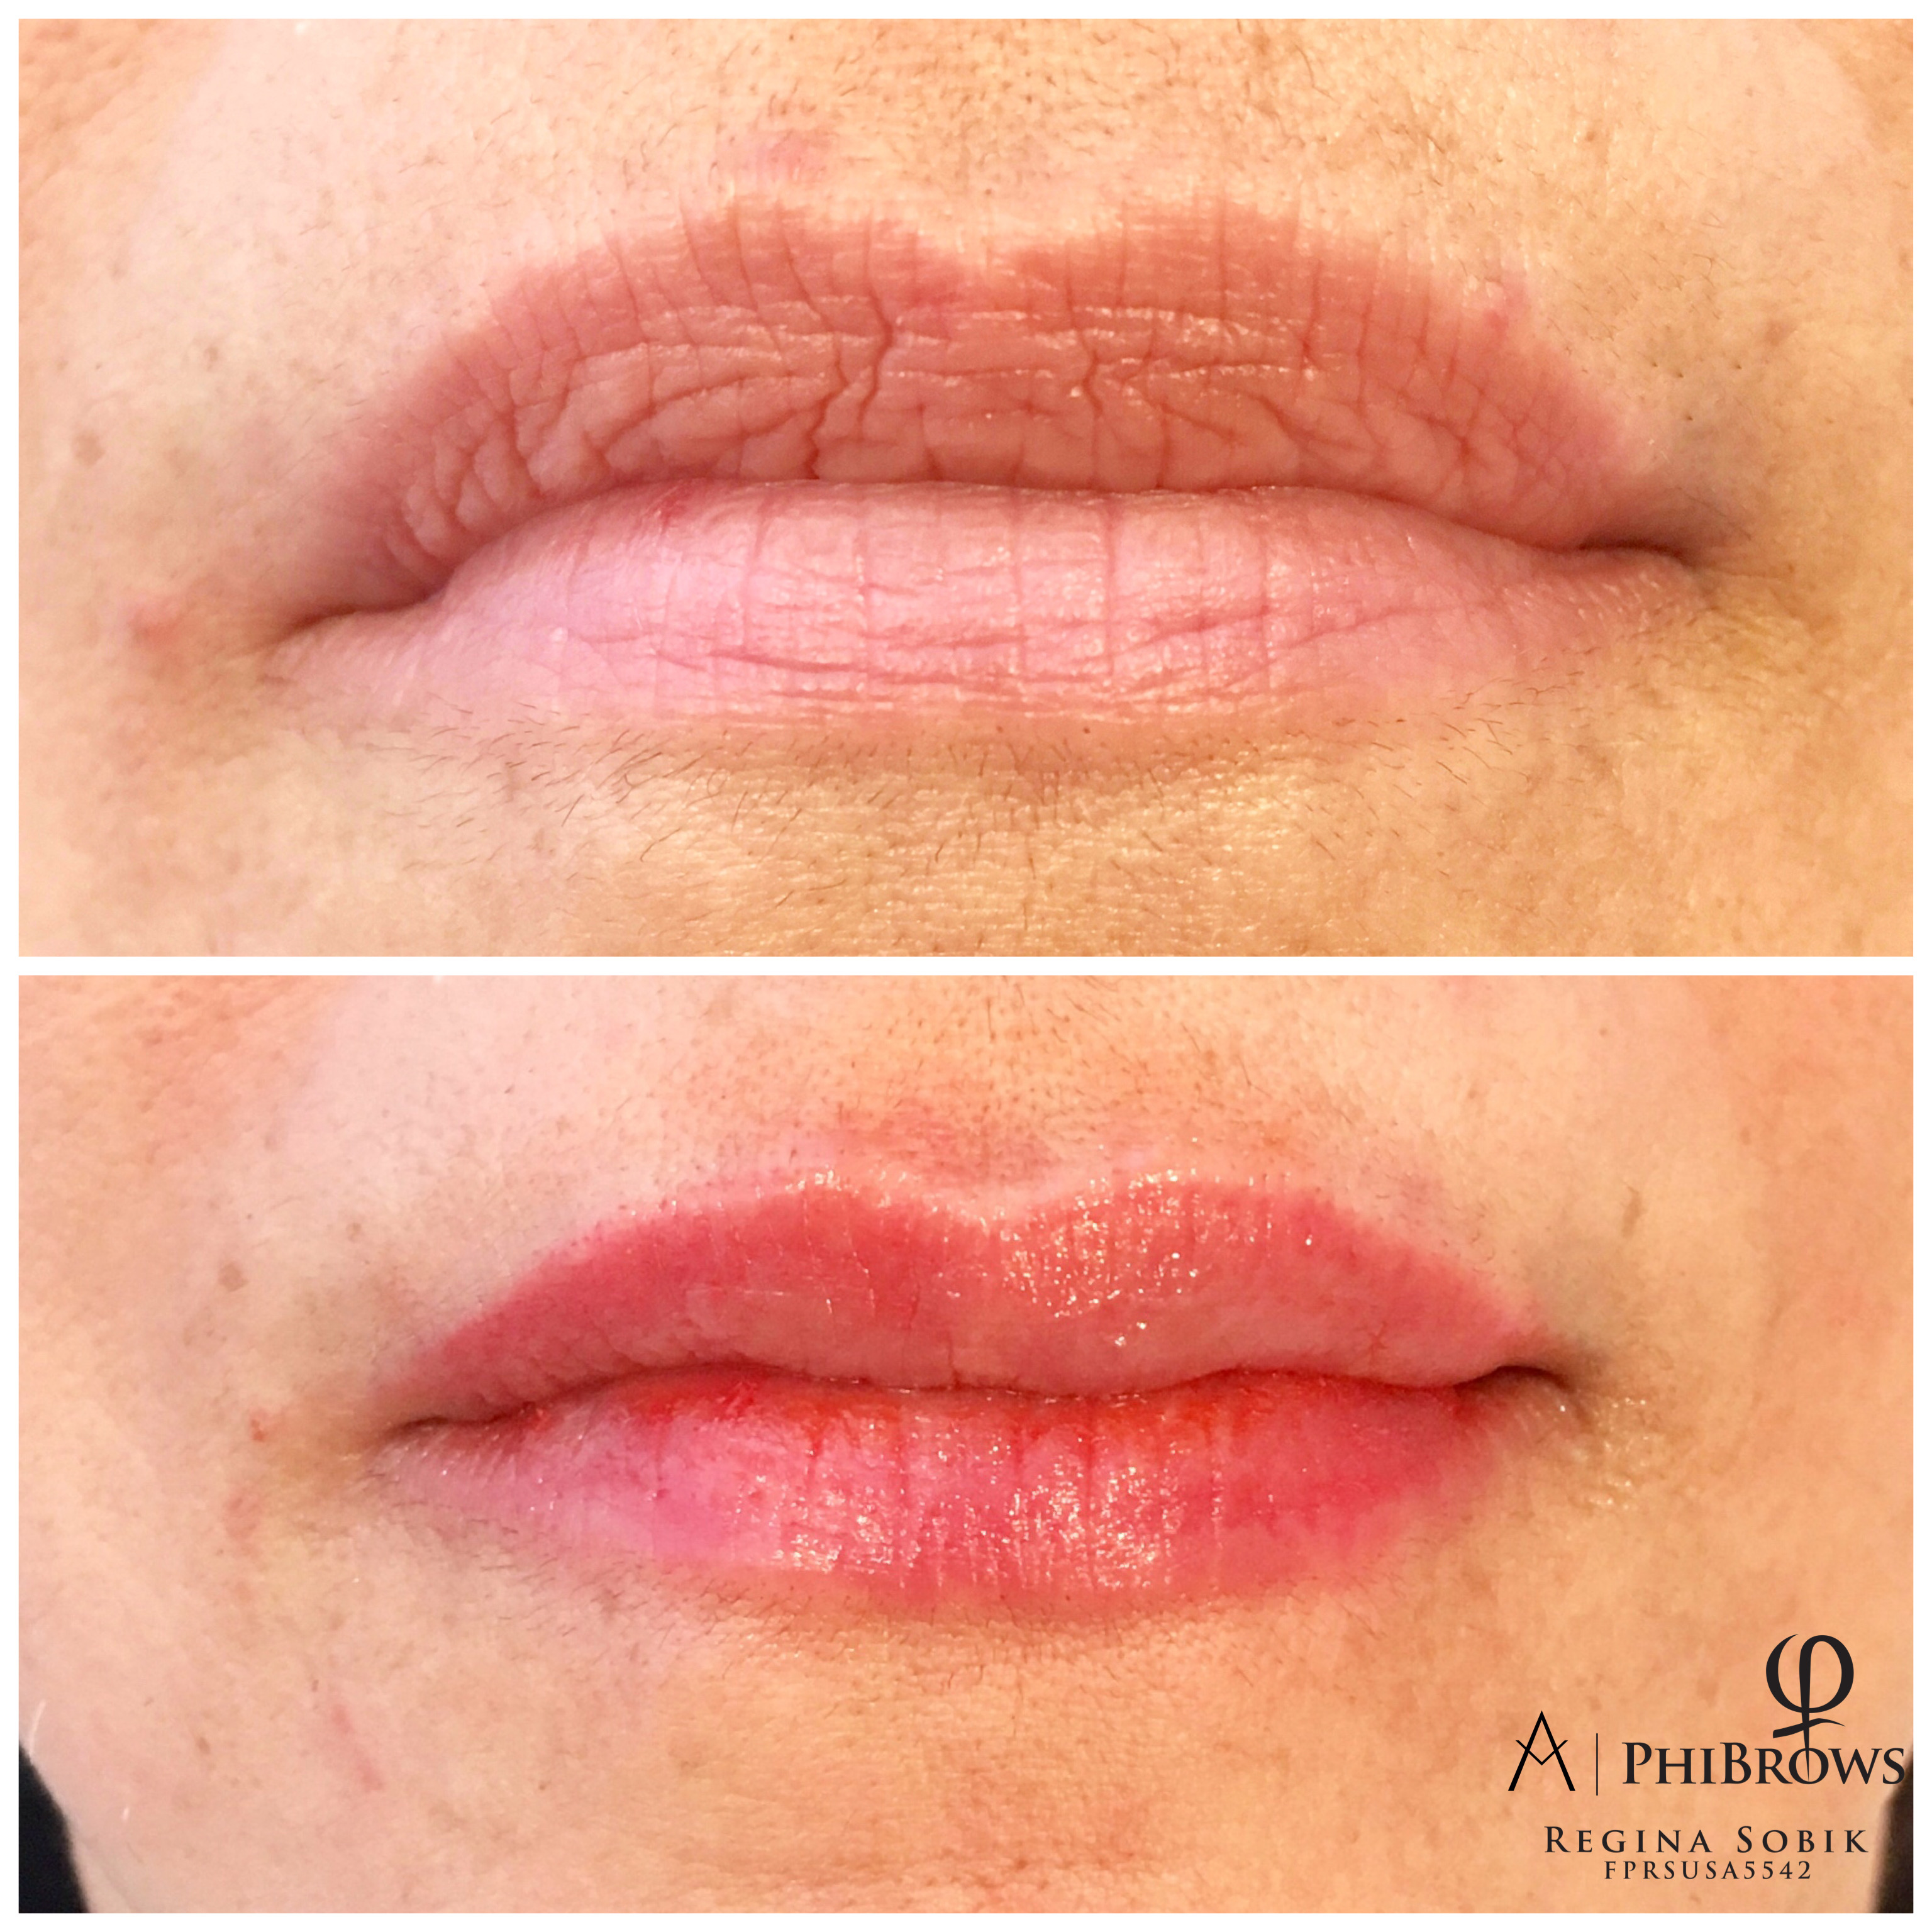 Lipliner right after microblading